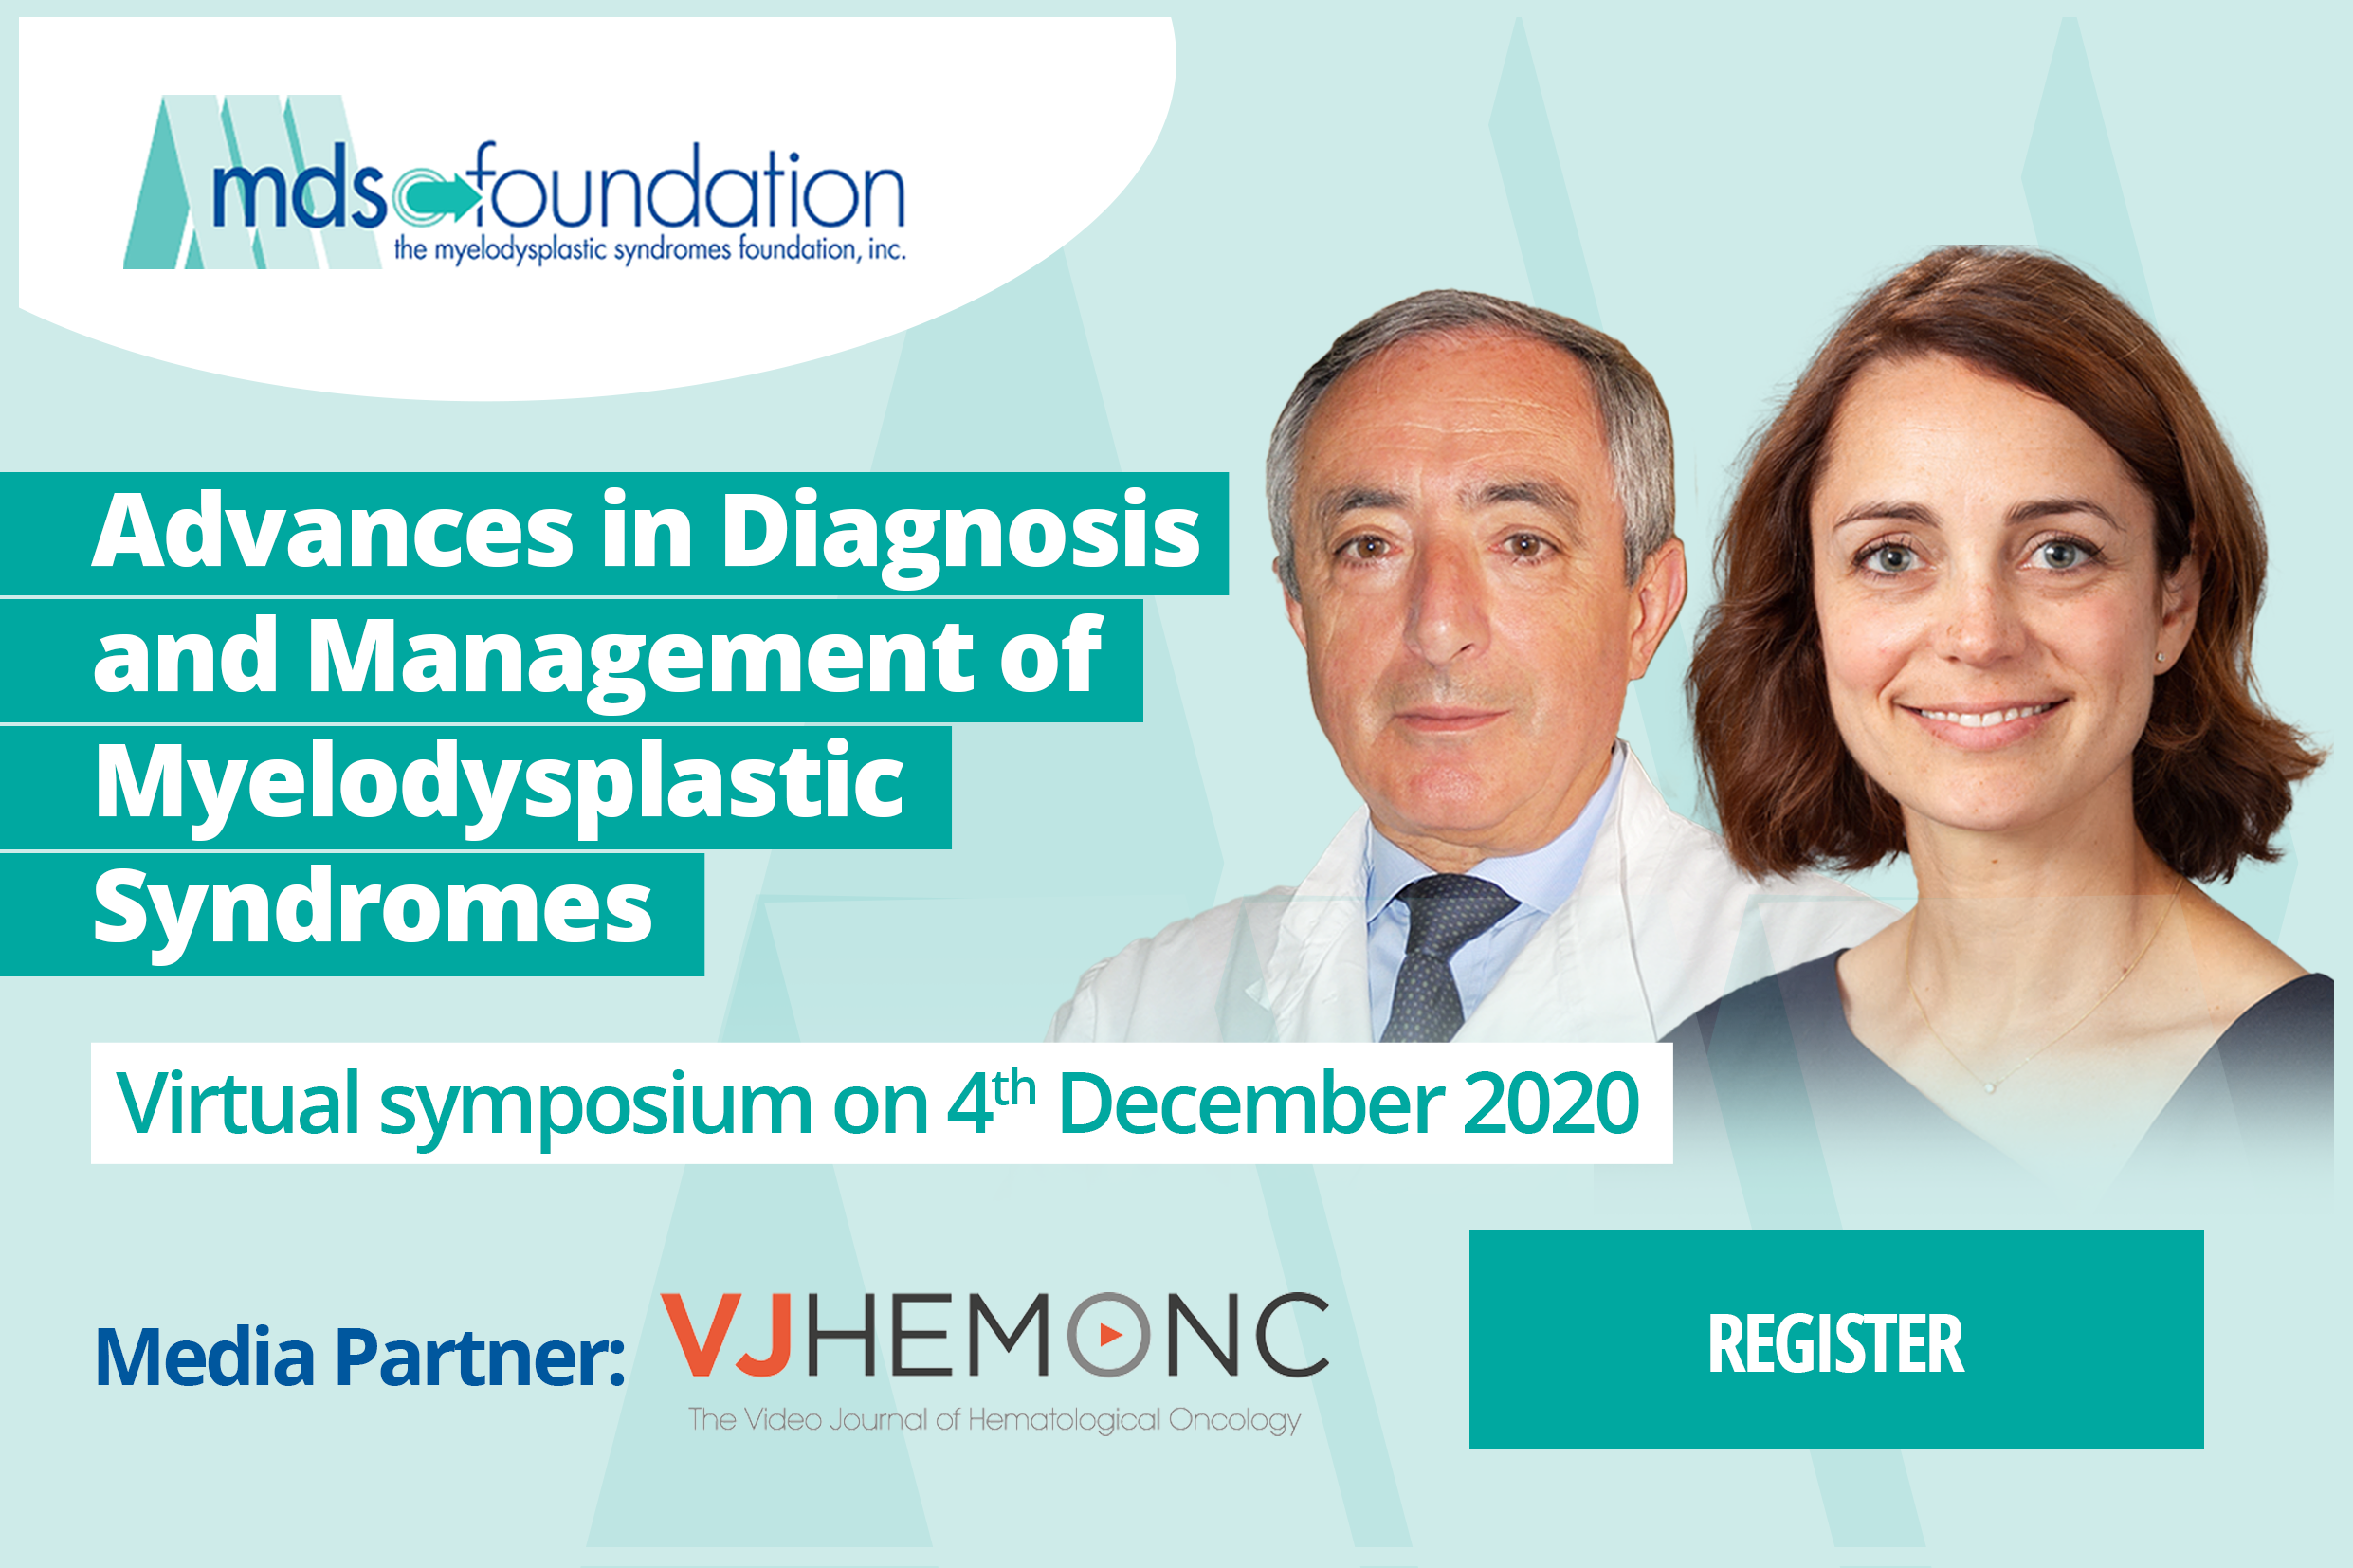 Register for the MDSF Symposium 2020